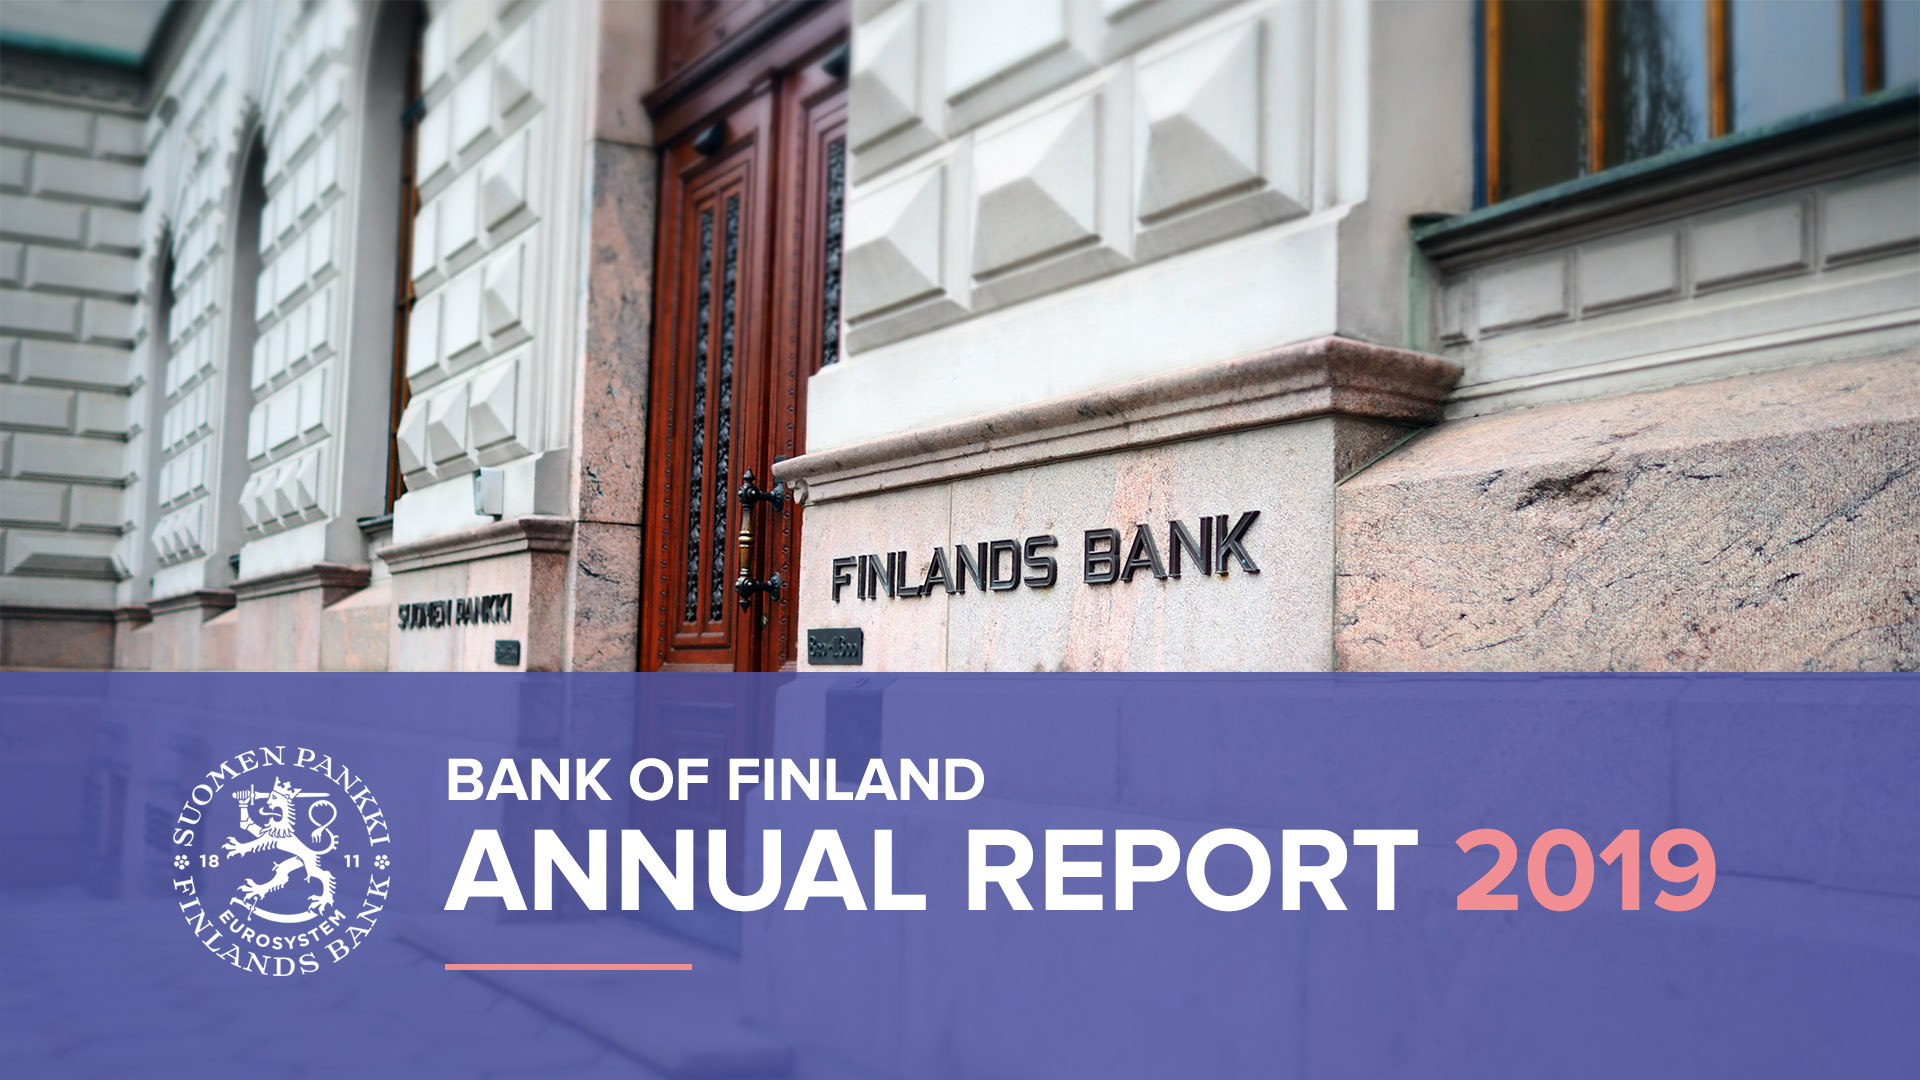 Bank of Finland Annual Report 2019